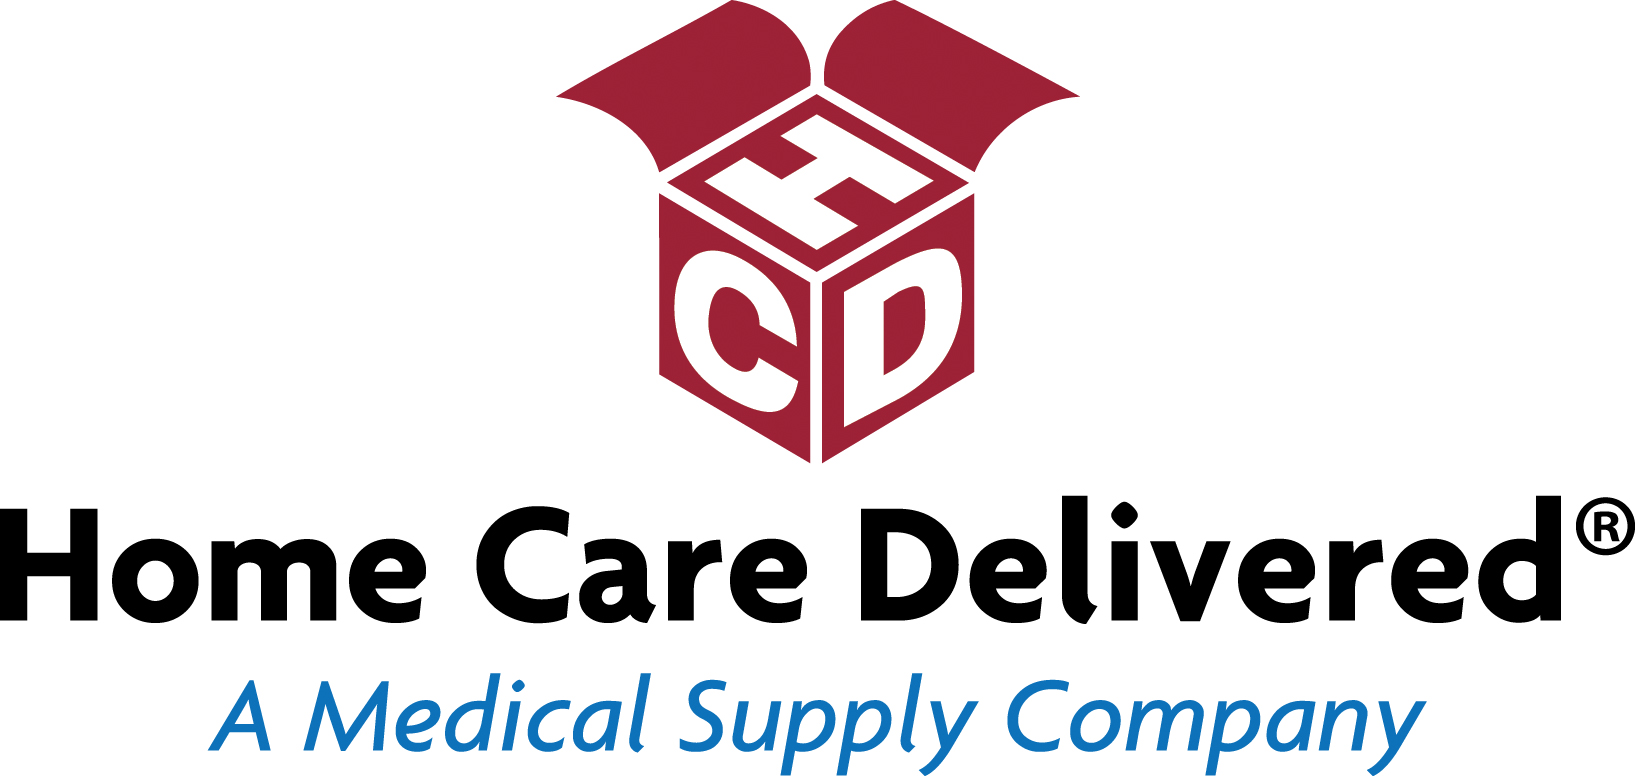 Home Care Delivered